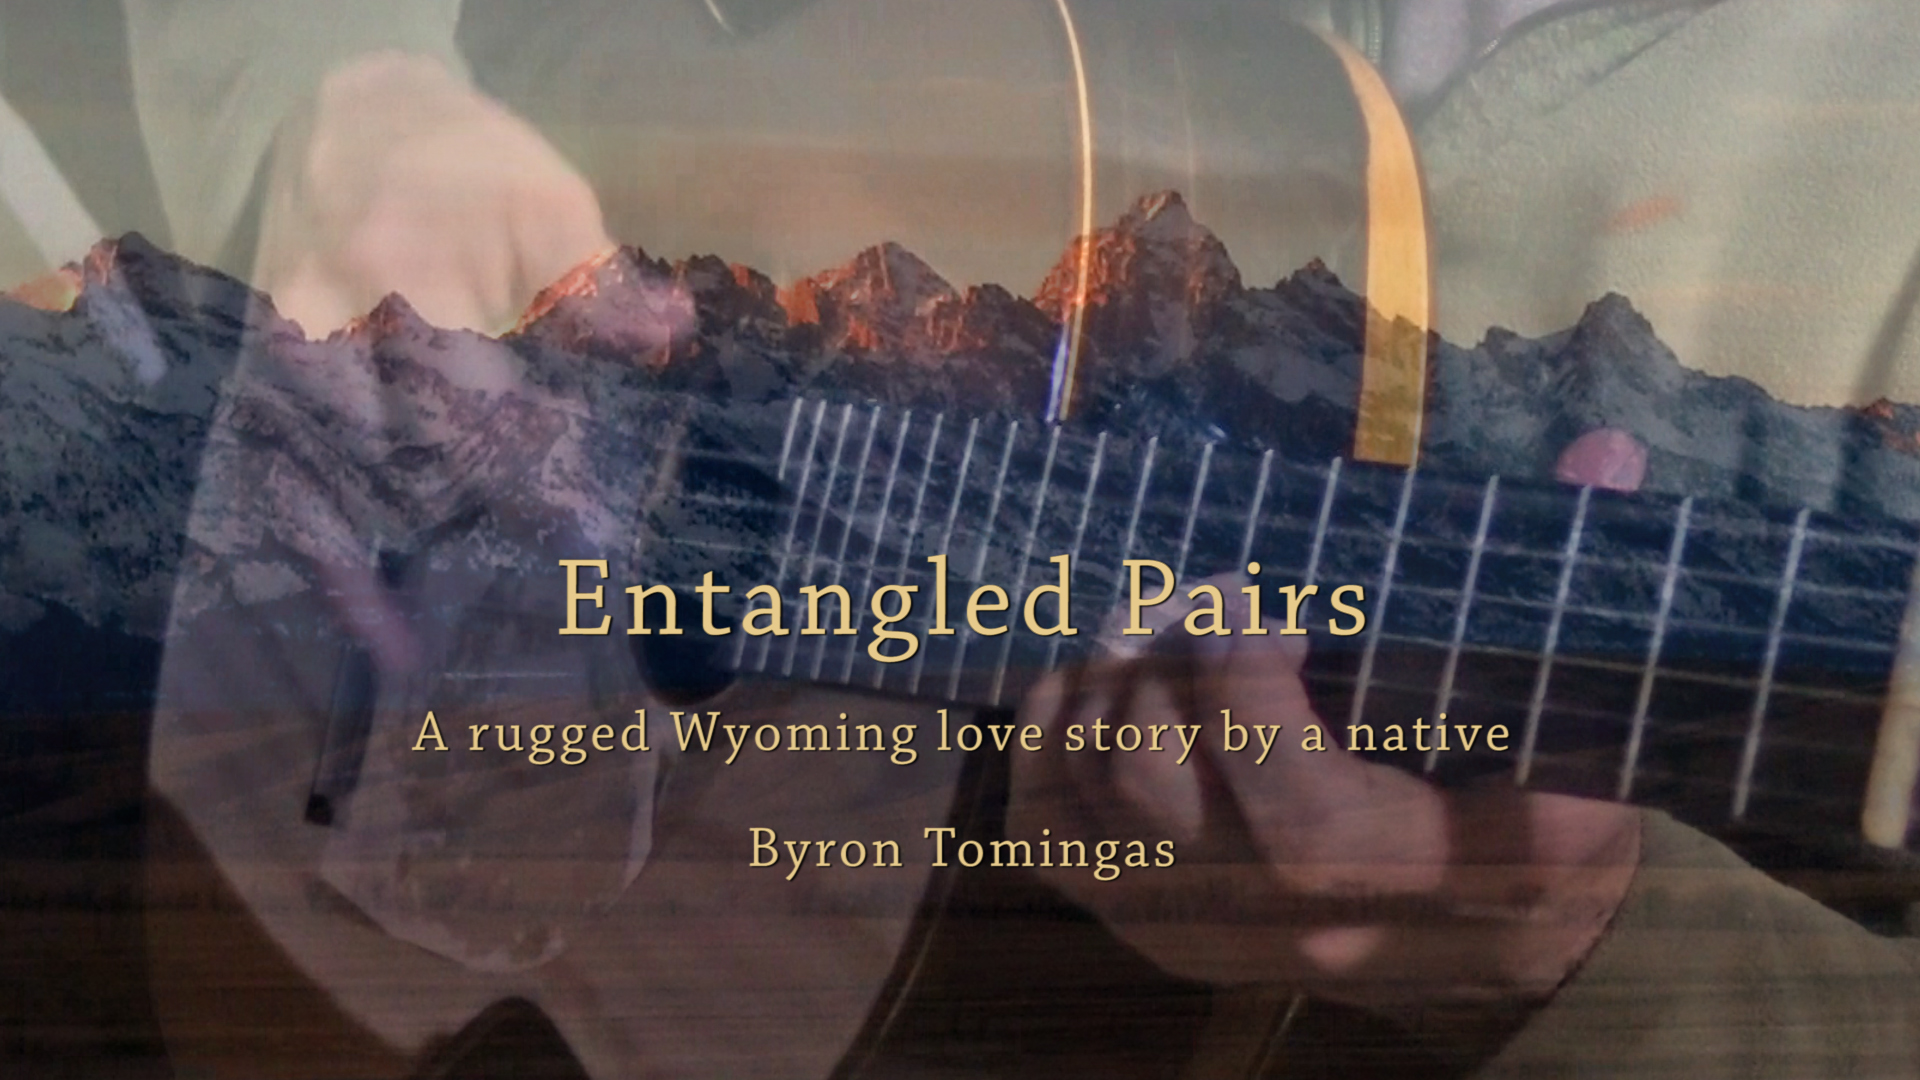 PBS Entangled Pairs Video